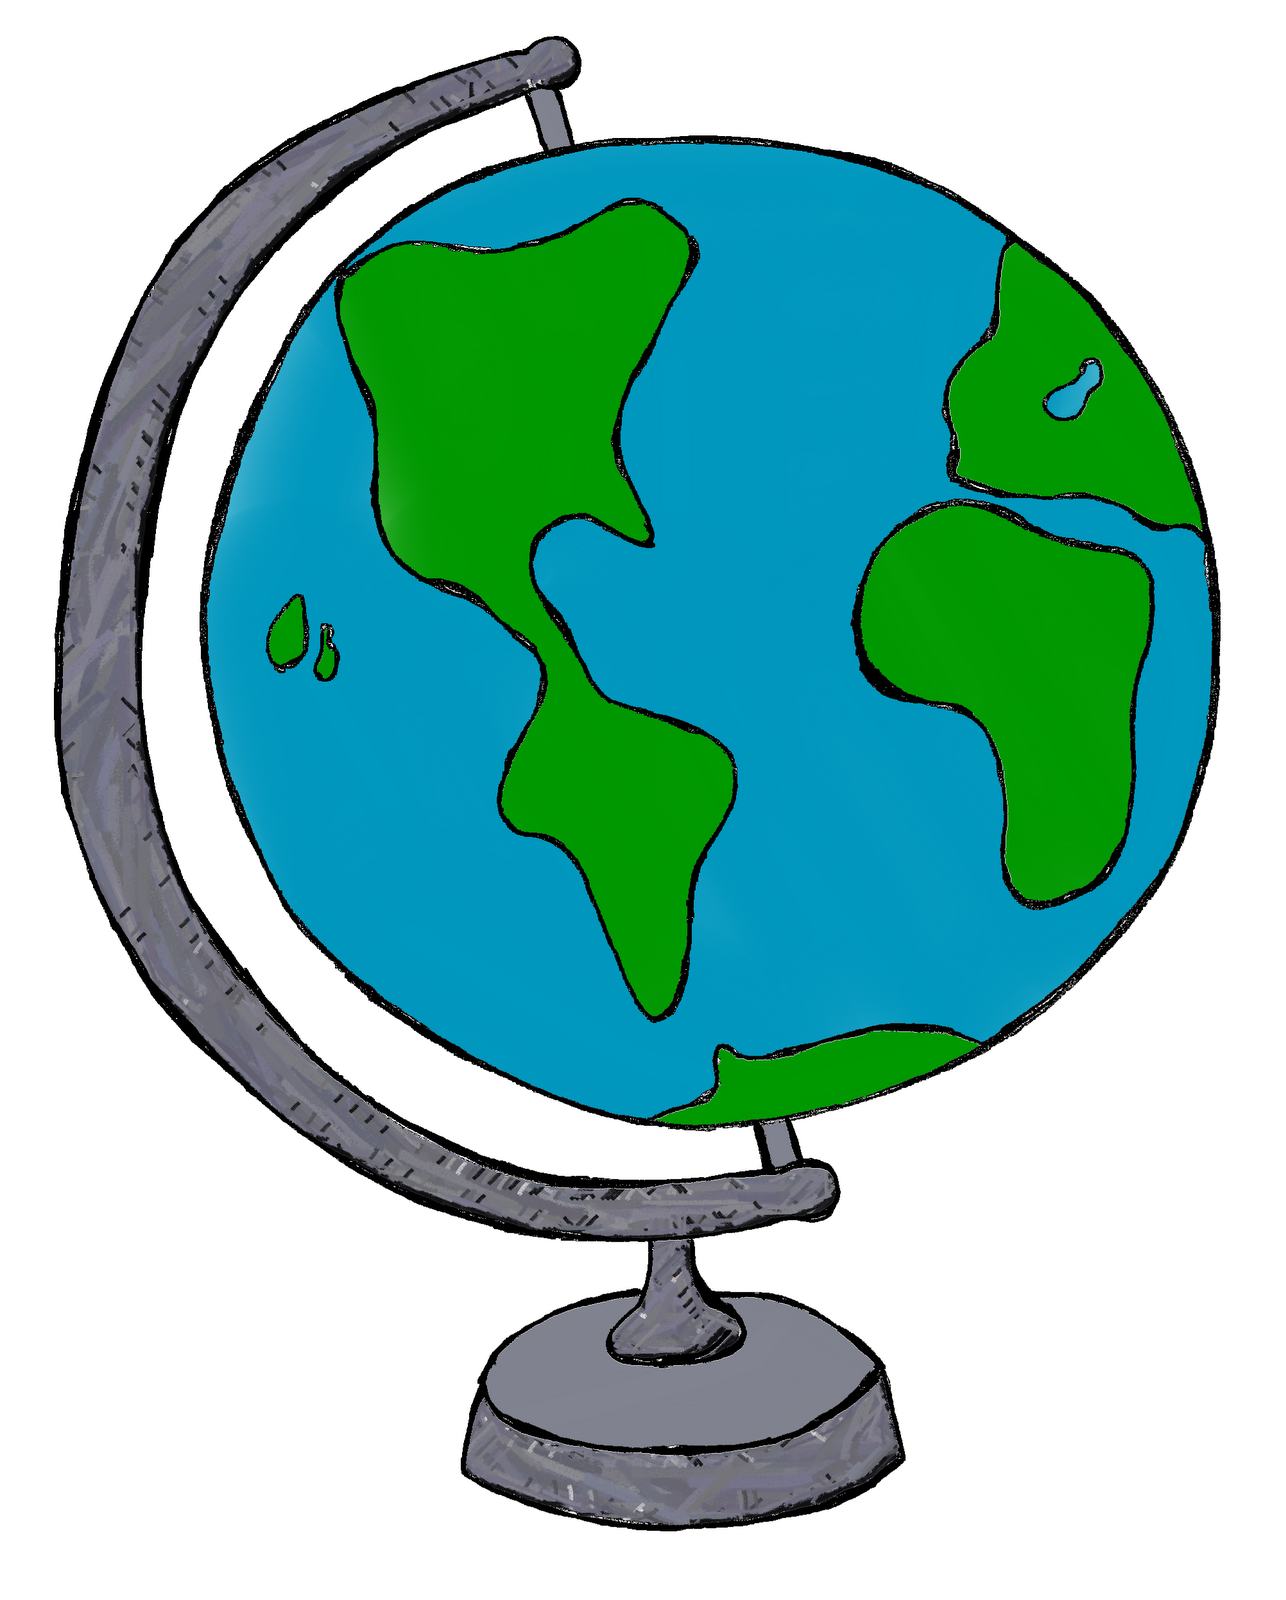 Planet clipart teacher. Clip art by carrie